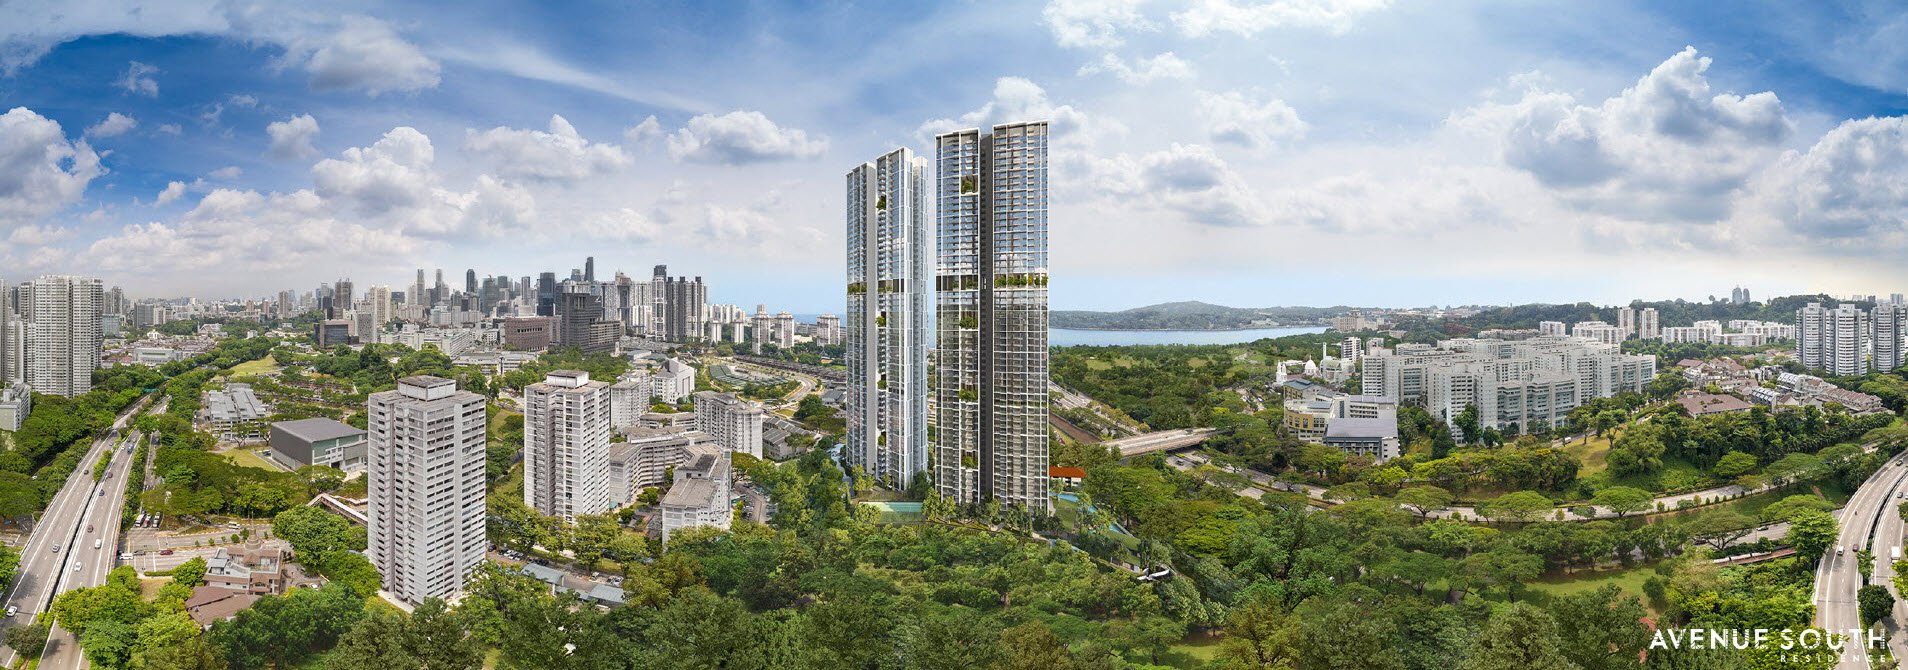 Avenue-South-Residence-UOL-Group-Silat-Avenue-Cantonment-MRT-Station